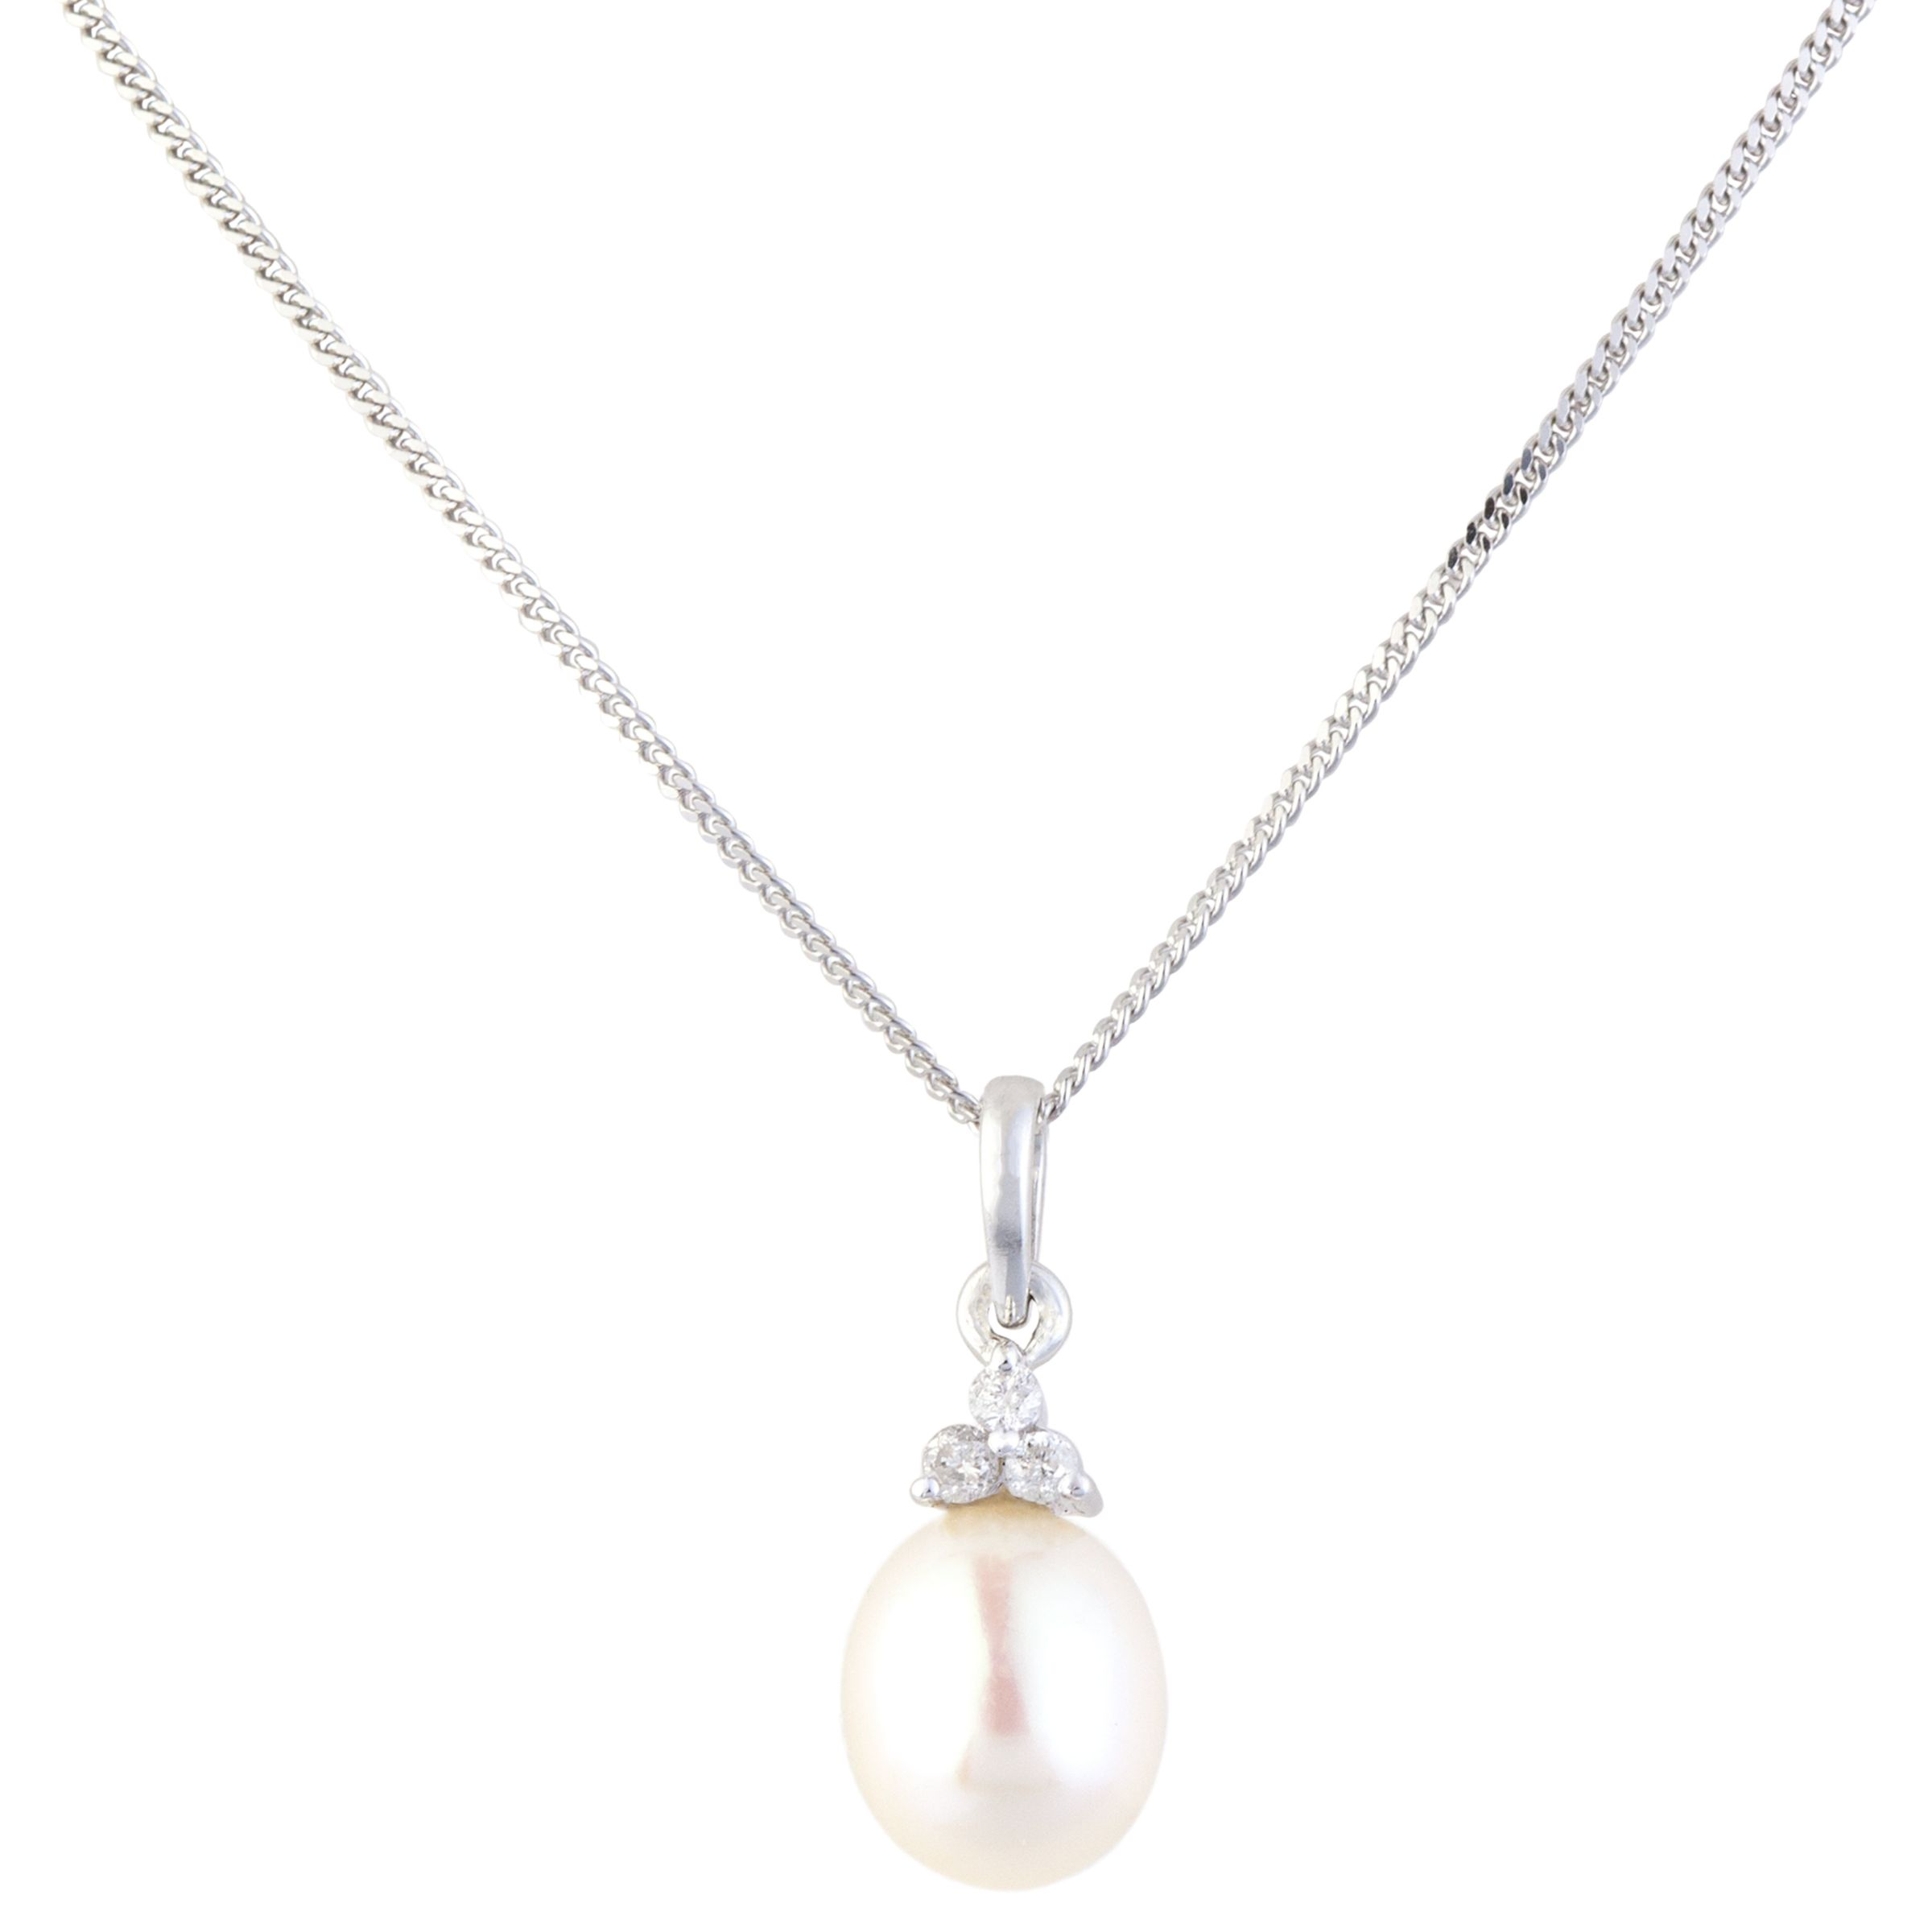 A B Davis A B Davis 9ct Gold Diamond and Pearl Pendant Necklace, White Gold